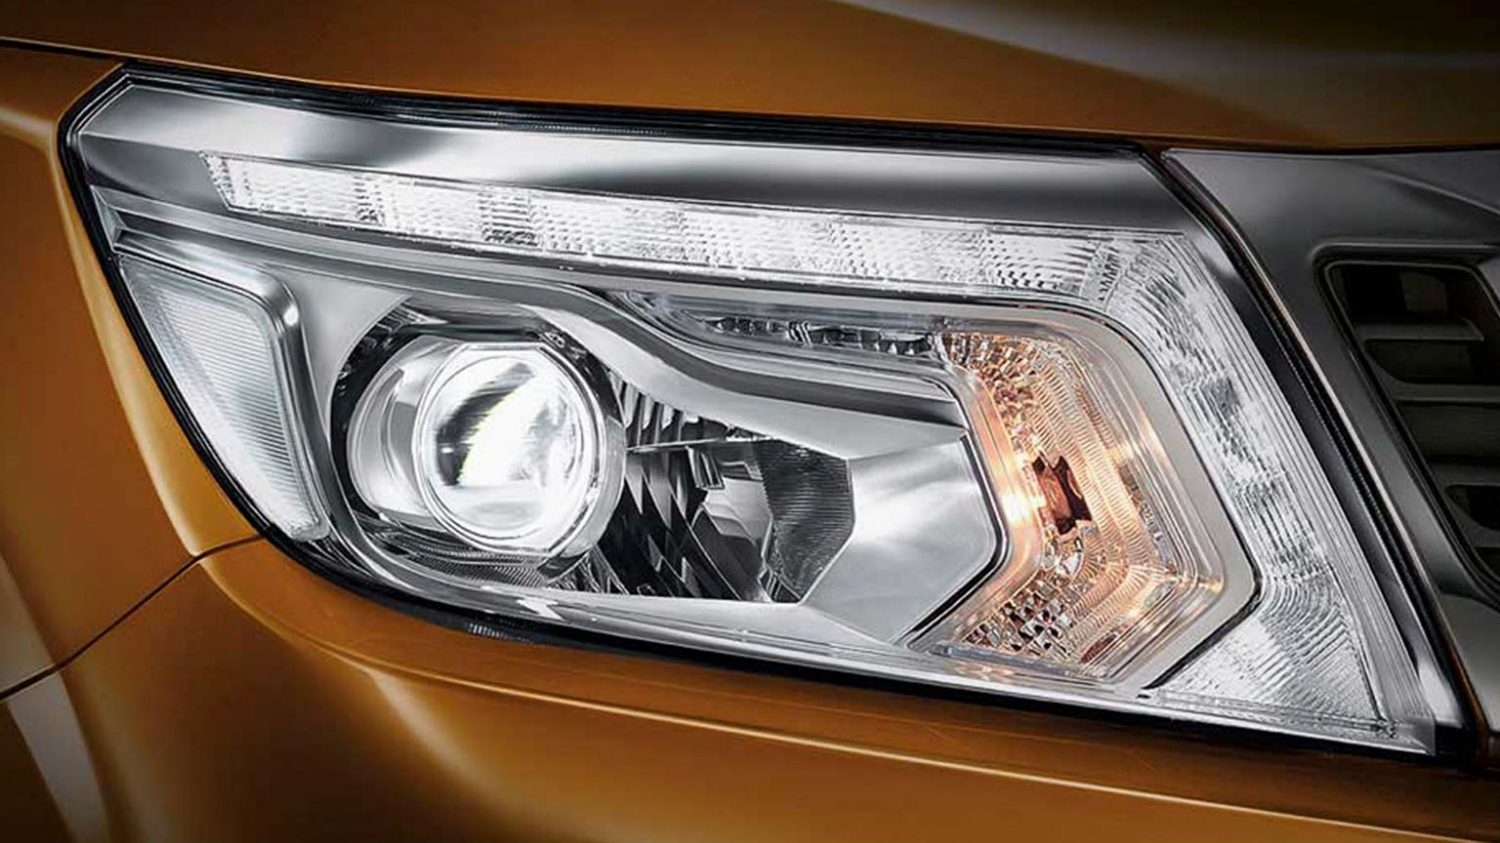 Navara | Nissan | LED daytime running lights